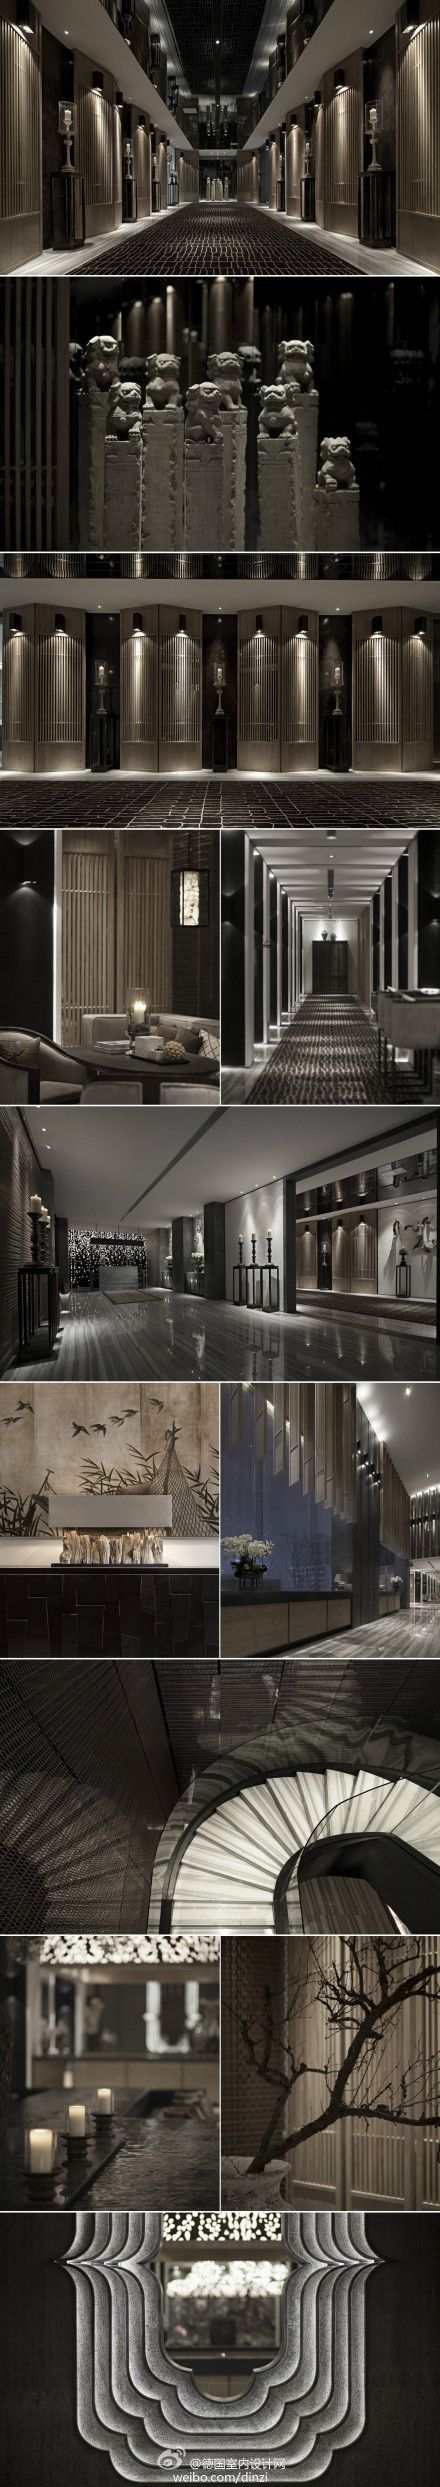 216 Best Reception Areas Images On Pinterest Architecture Office Lobby And Arquitetura